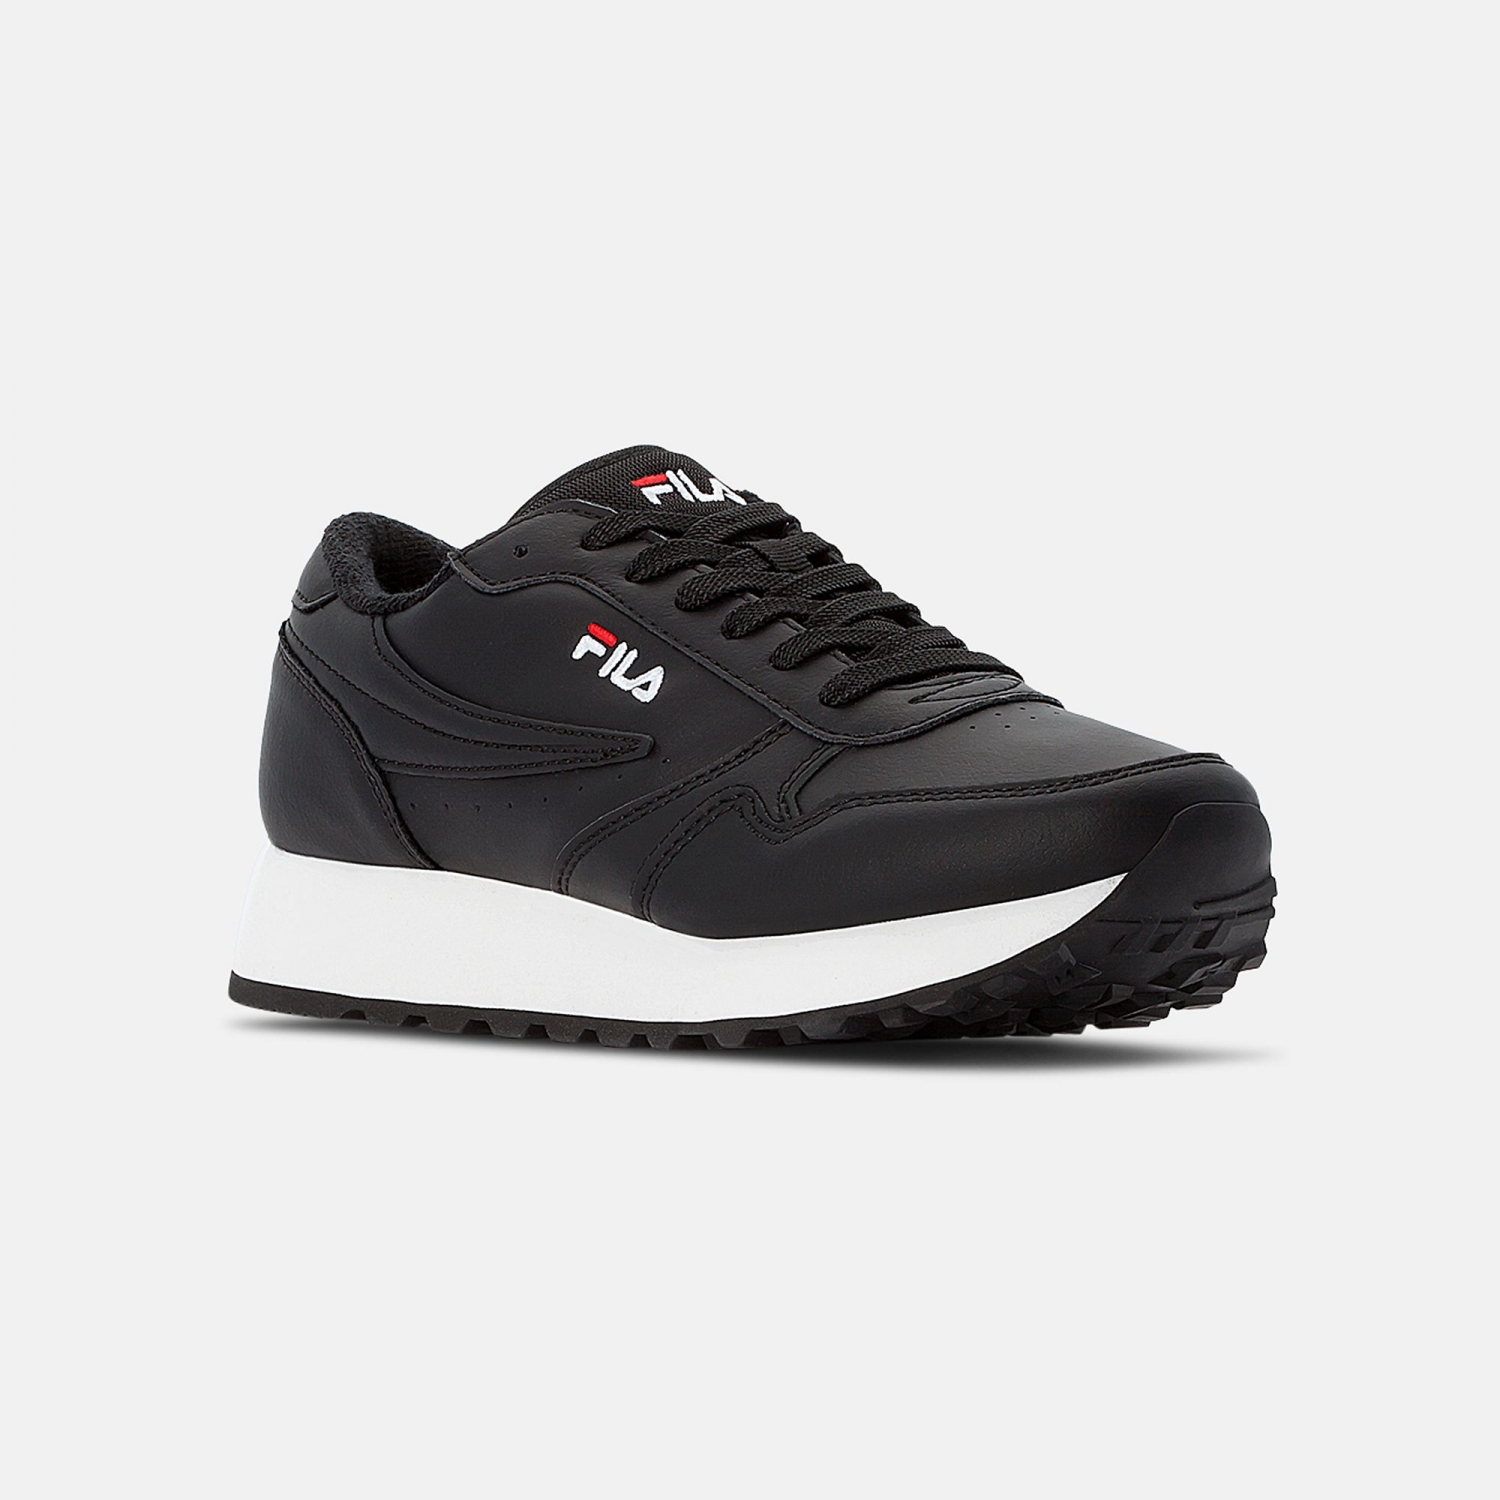 Fila Orbit Zeppa L Wmn black Bild 2